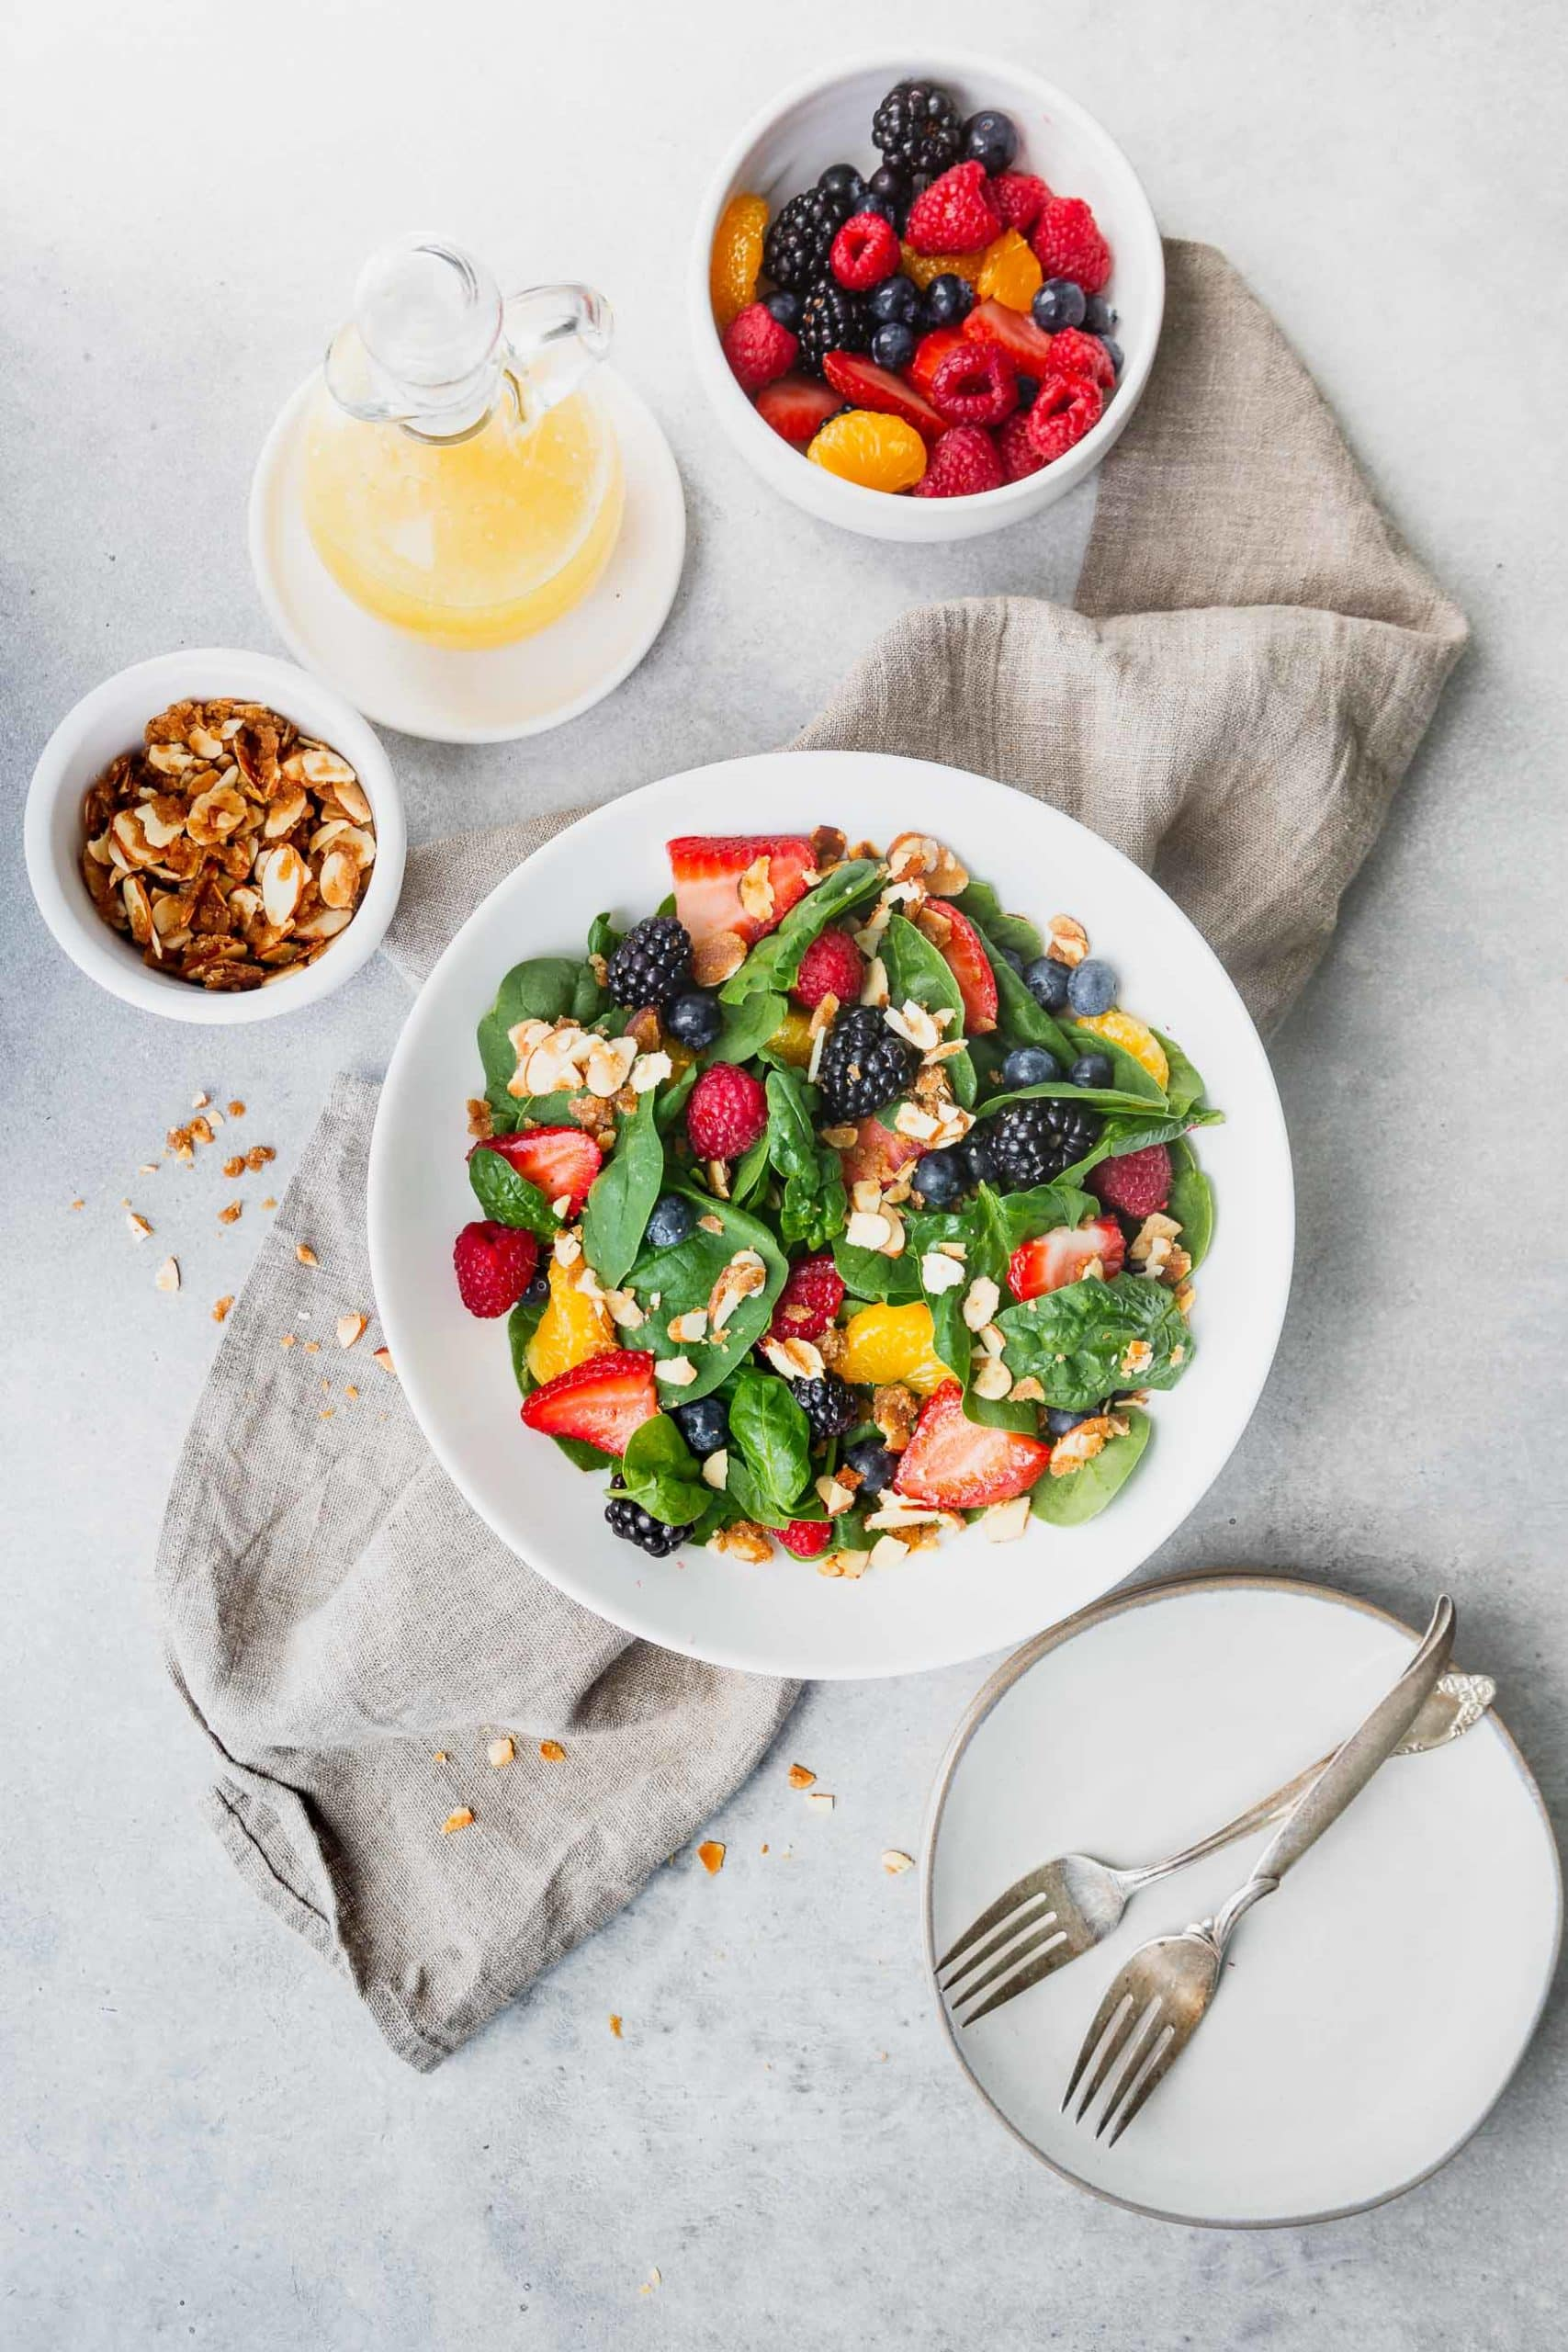 a photo of a large white ceramic bowl full of spinach berry salad with a bowl of brown sugar almonds next to it, a small salad plate with two forks crossing on it, a bottle of lemon dressing and a bowl full of fresh berries.